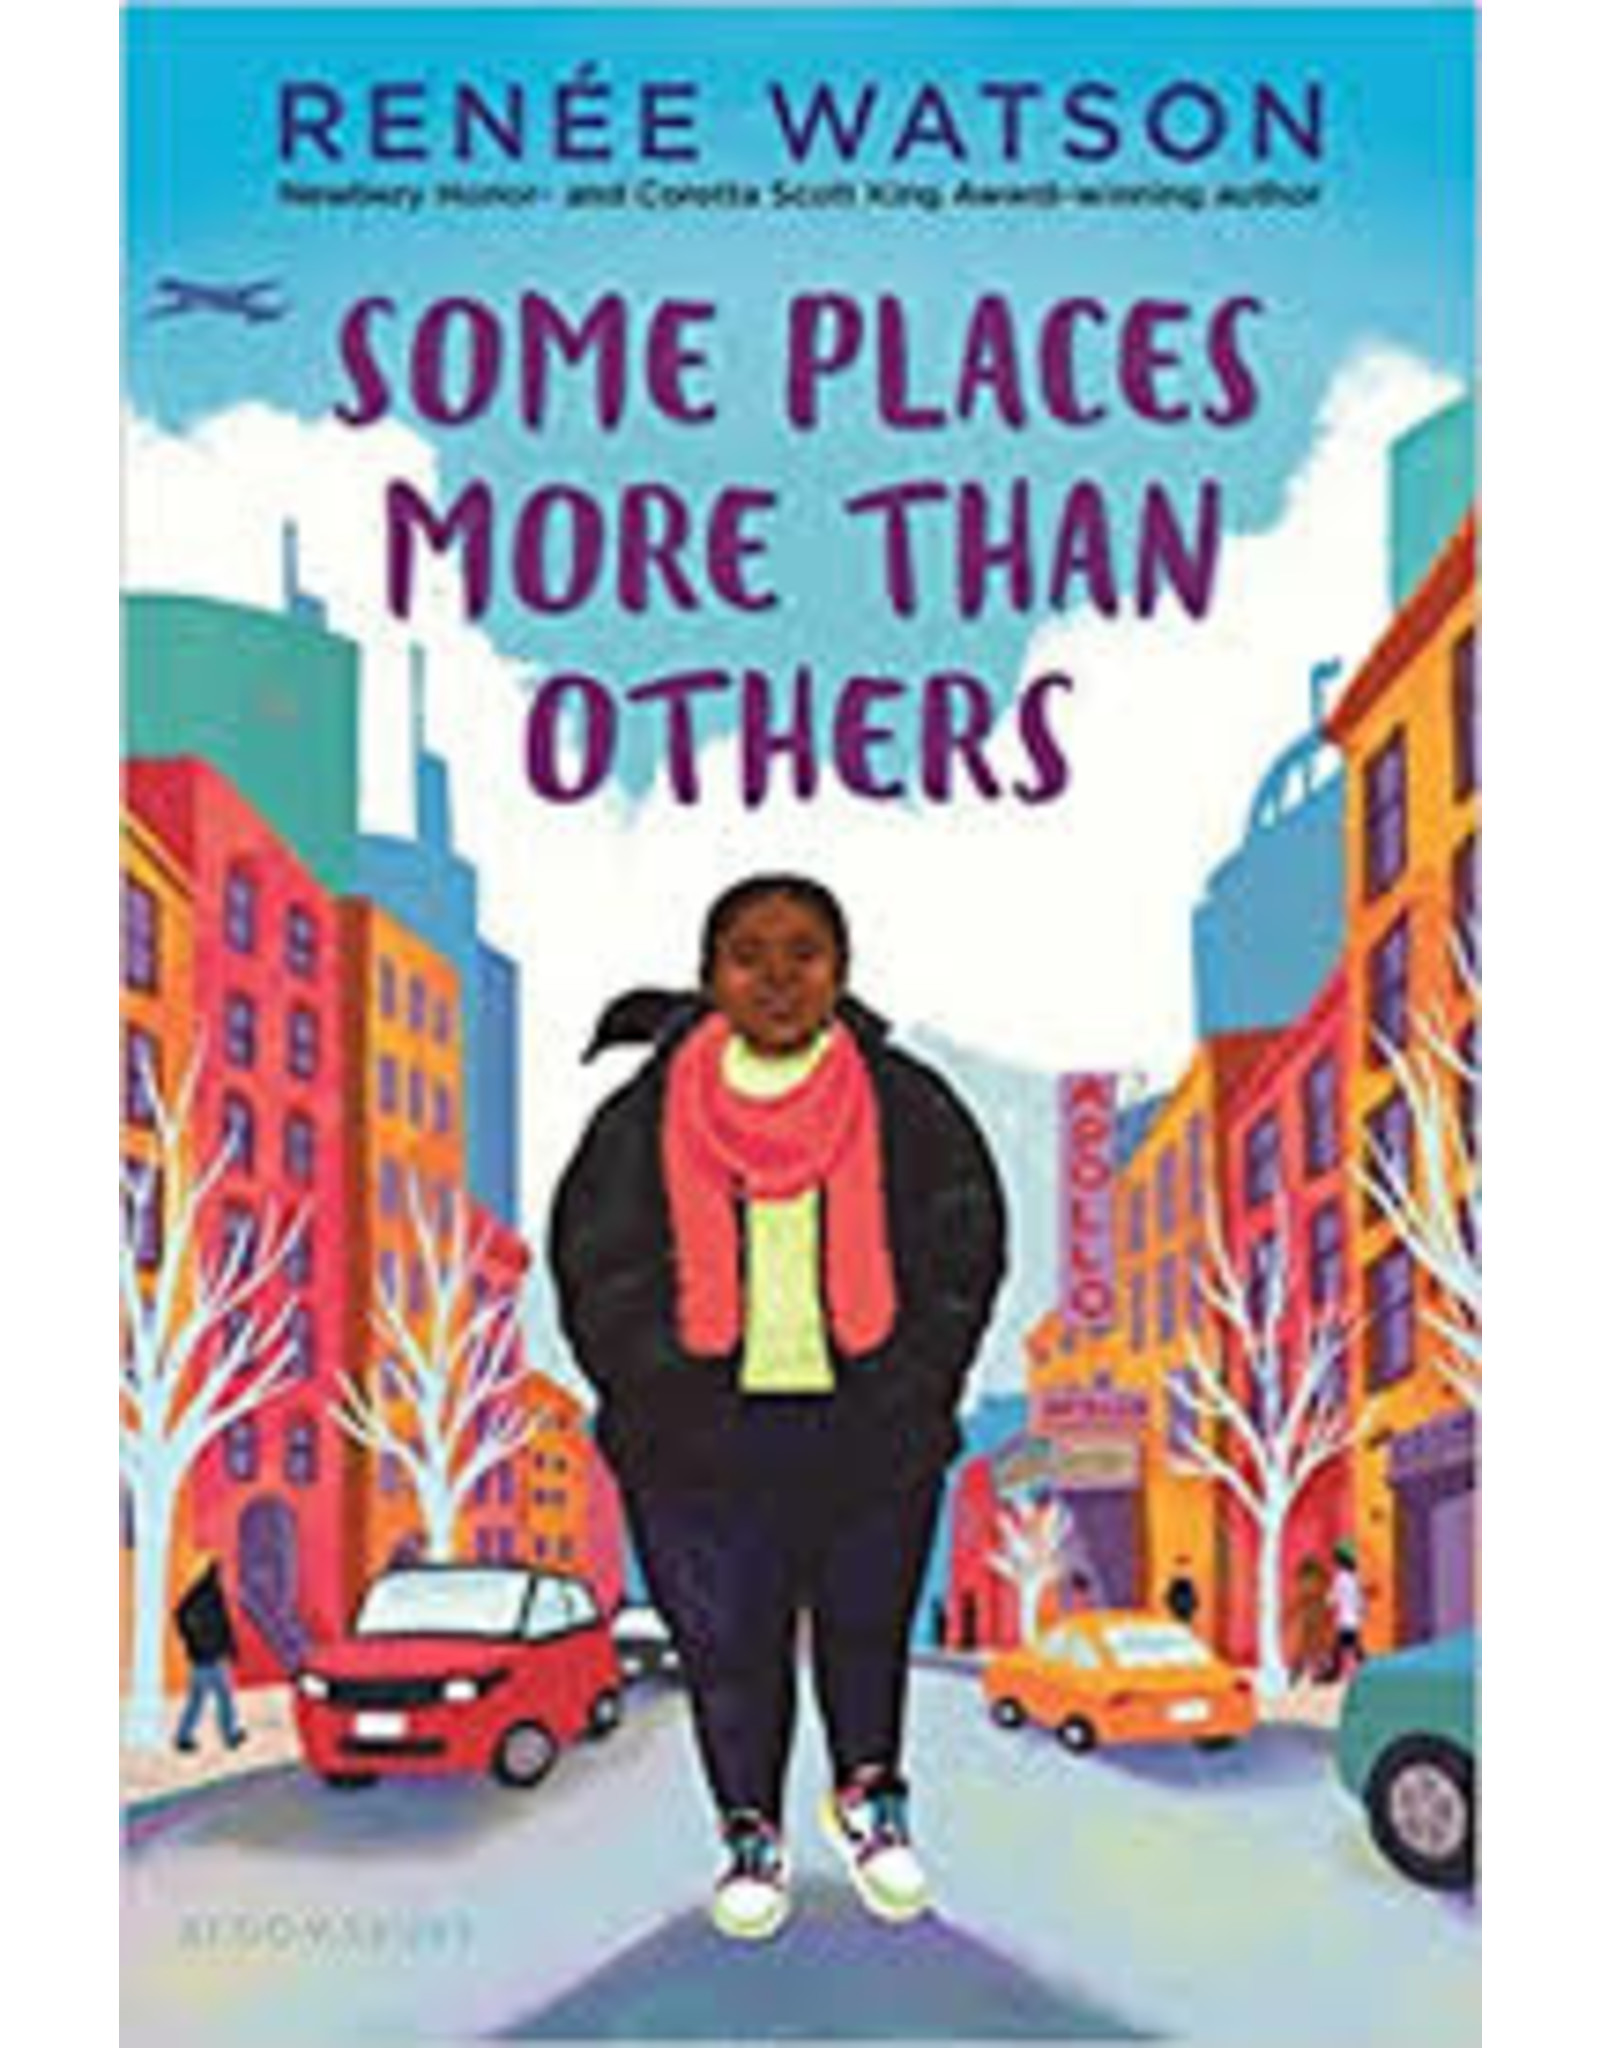 Books Some Places More Than Others by Renee Watson